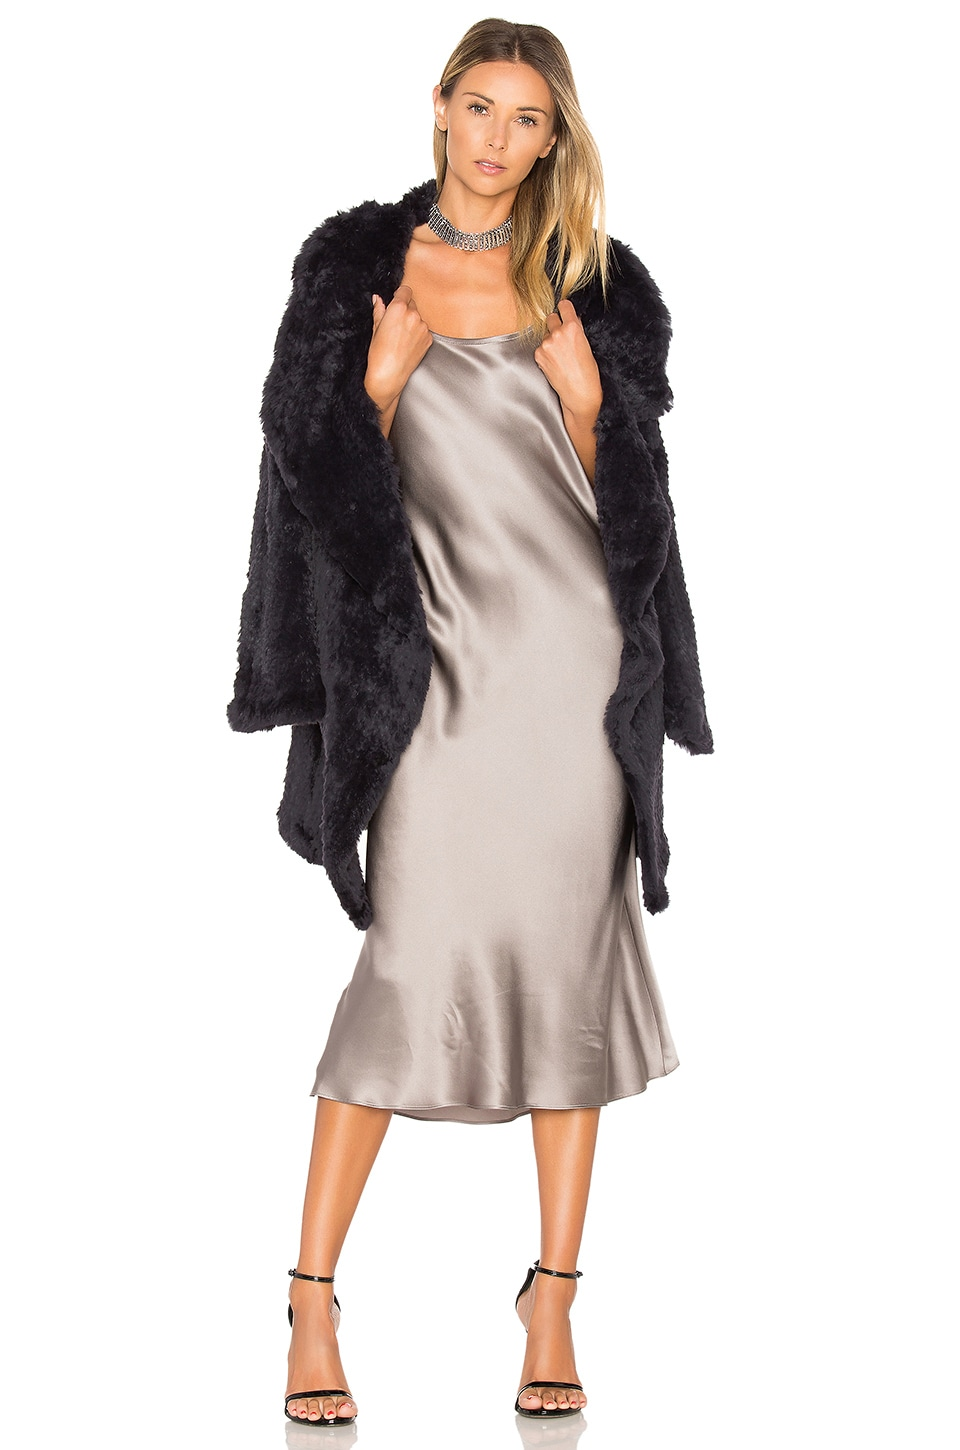 June Flair Sleeve Long Rabbit Fur Jacket in Midnight